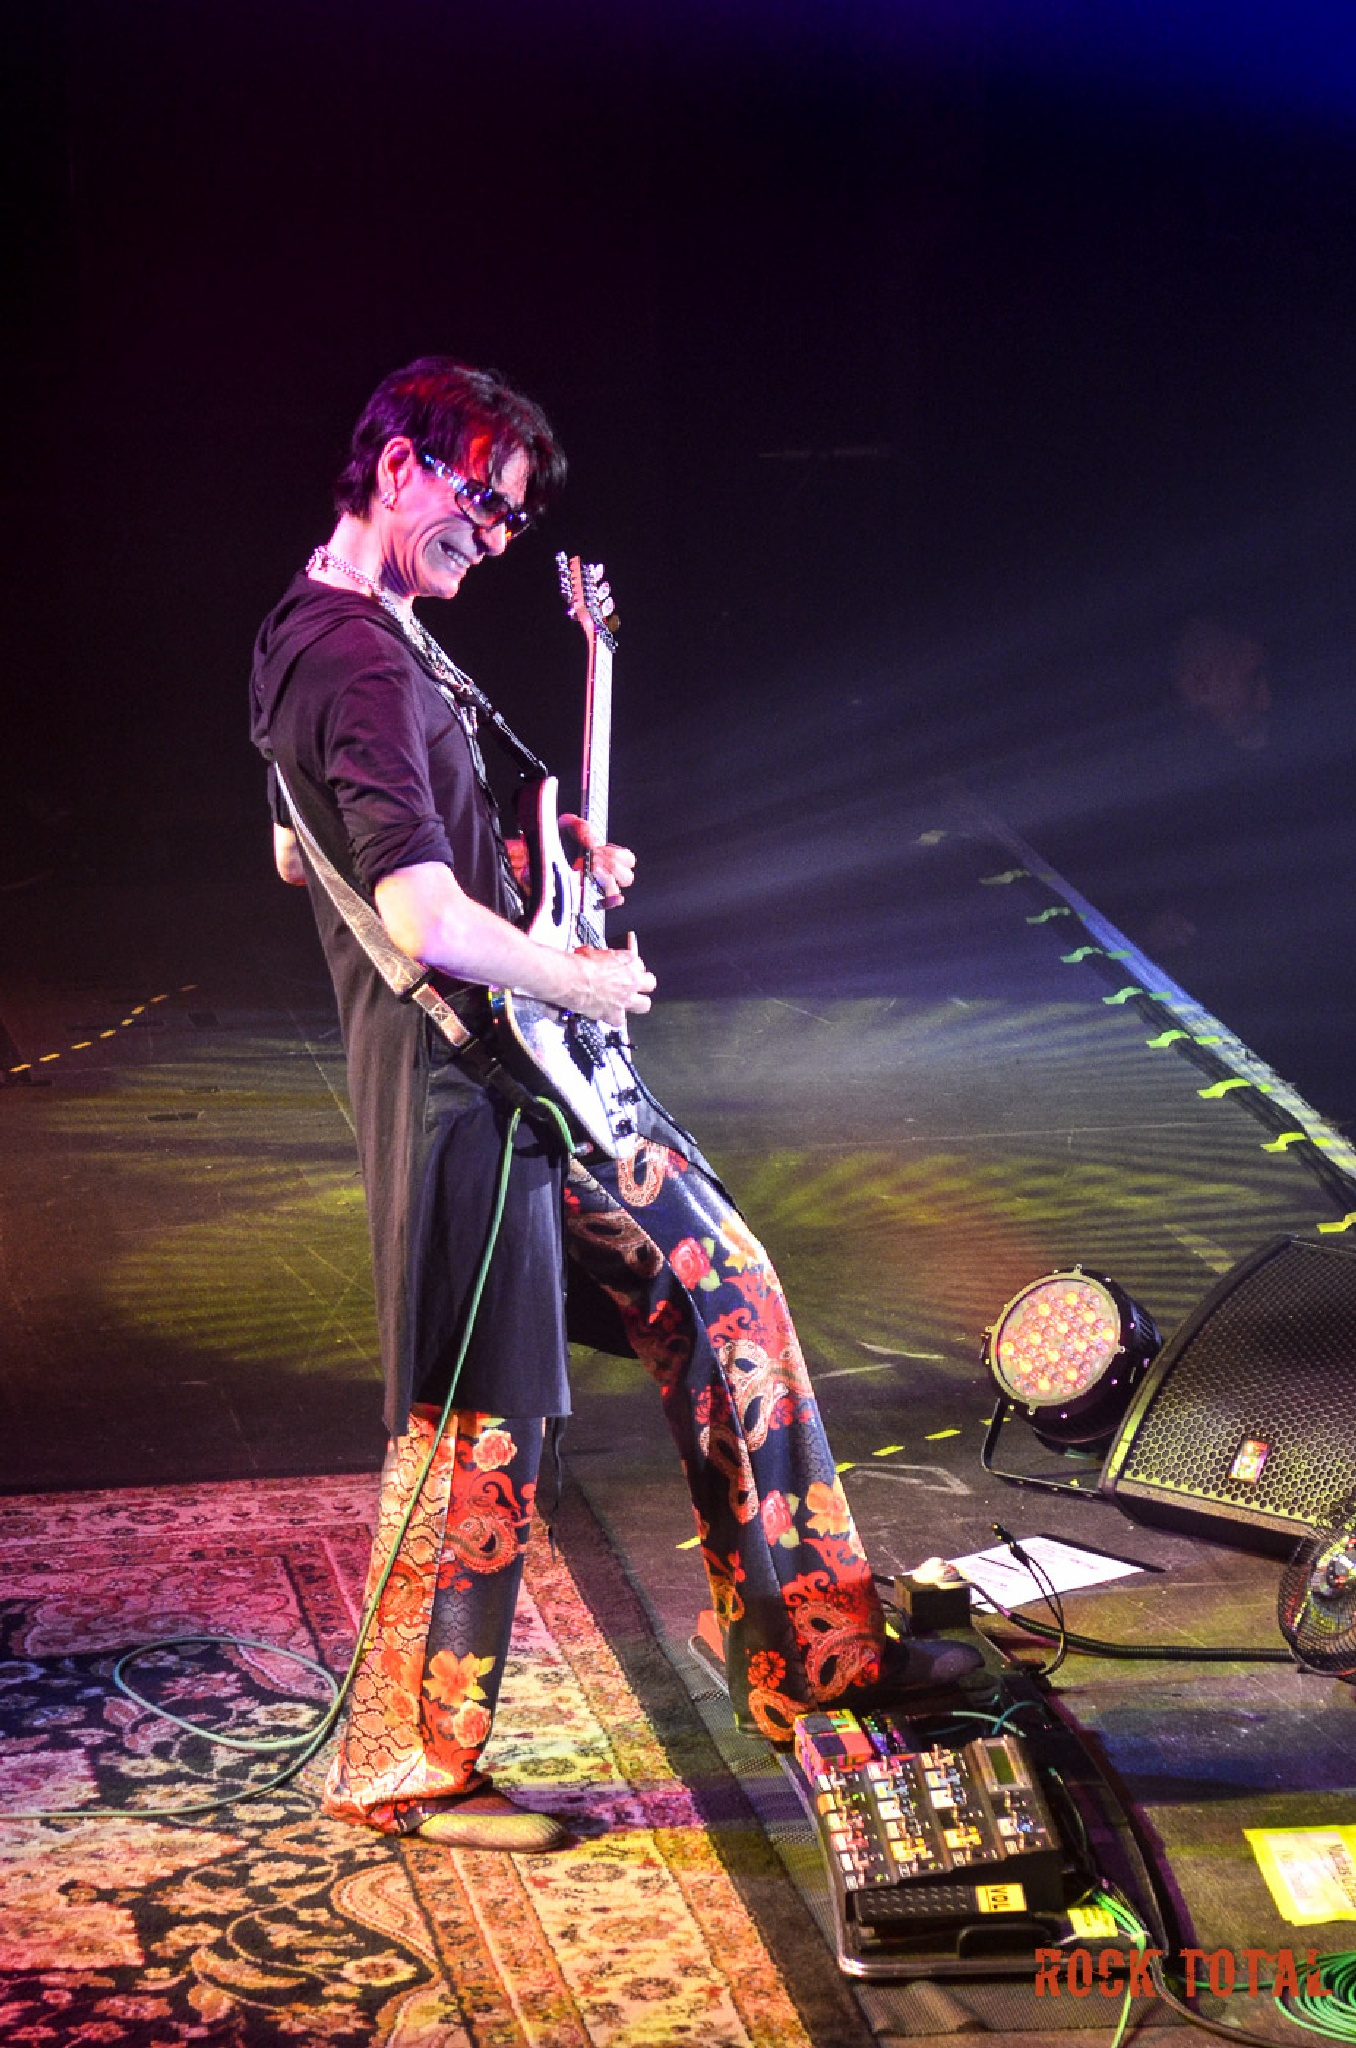 Steve Vai in concert by Rock Total